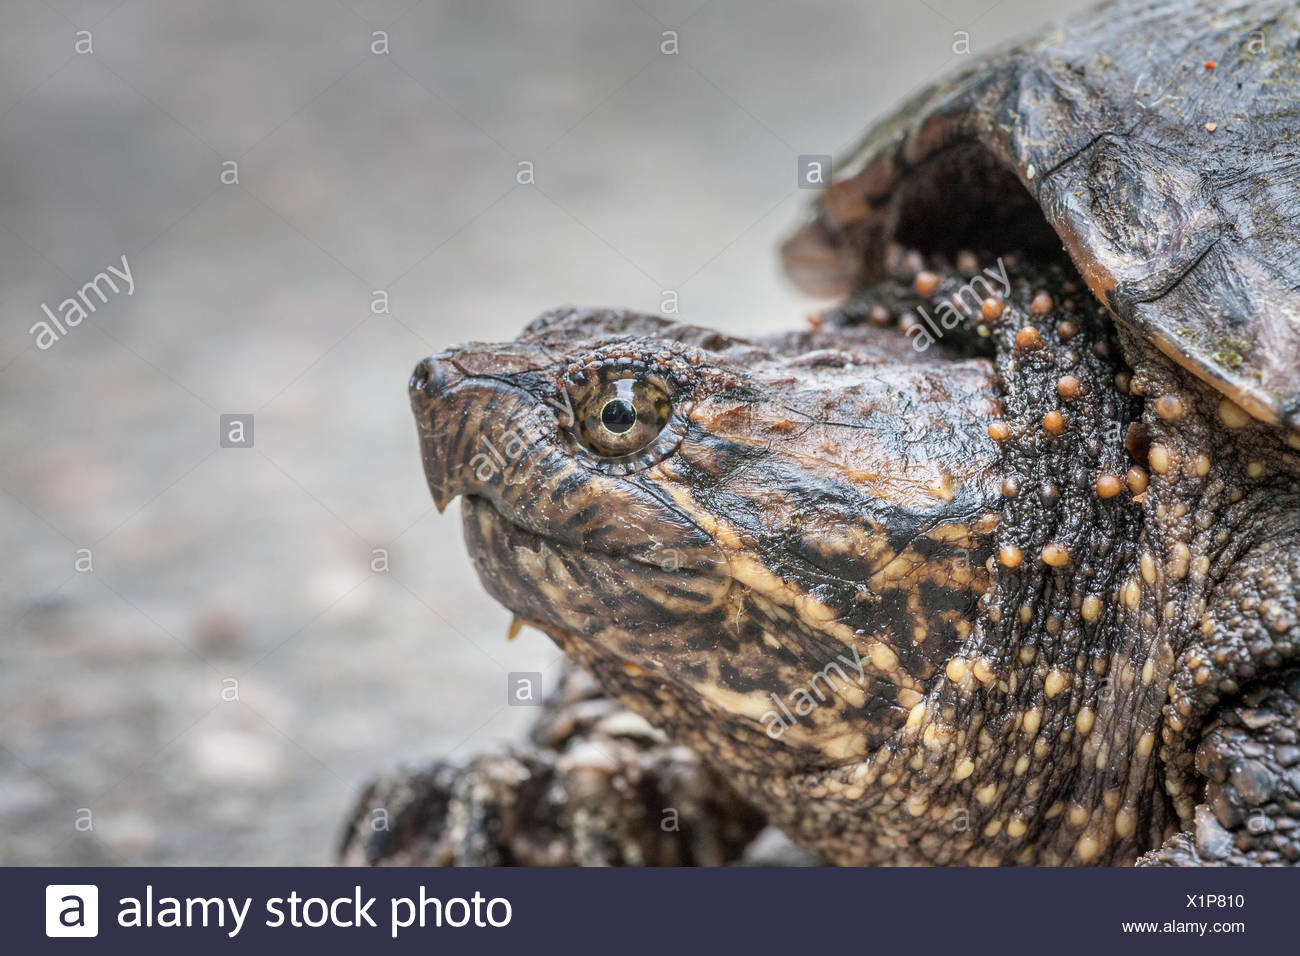 Juvenile, Snapping Turtle (Chelydra serpentina), Bon Echo Provincial Park, Ontario Stock Photo